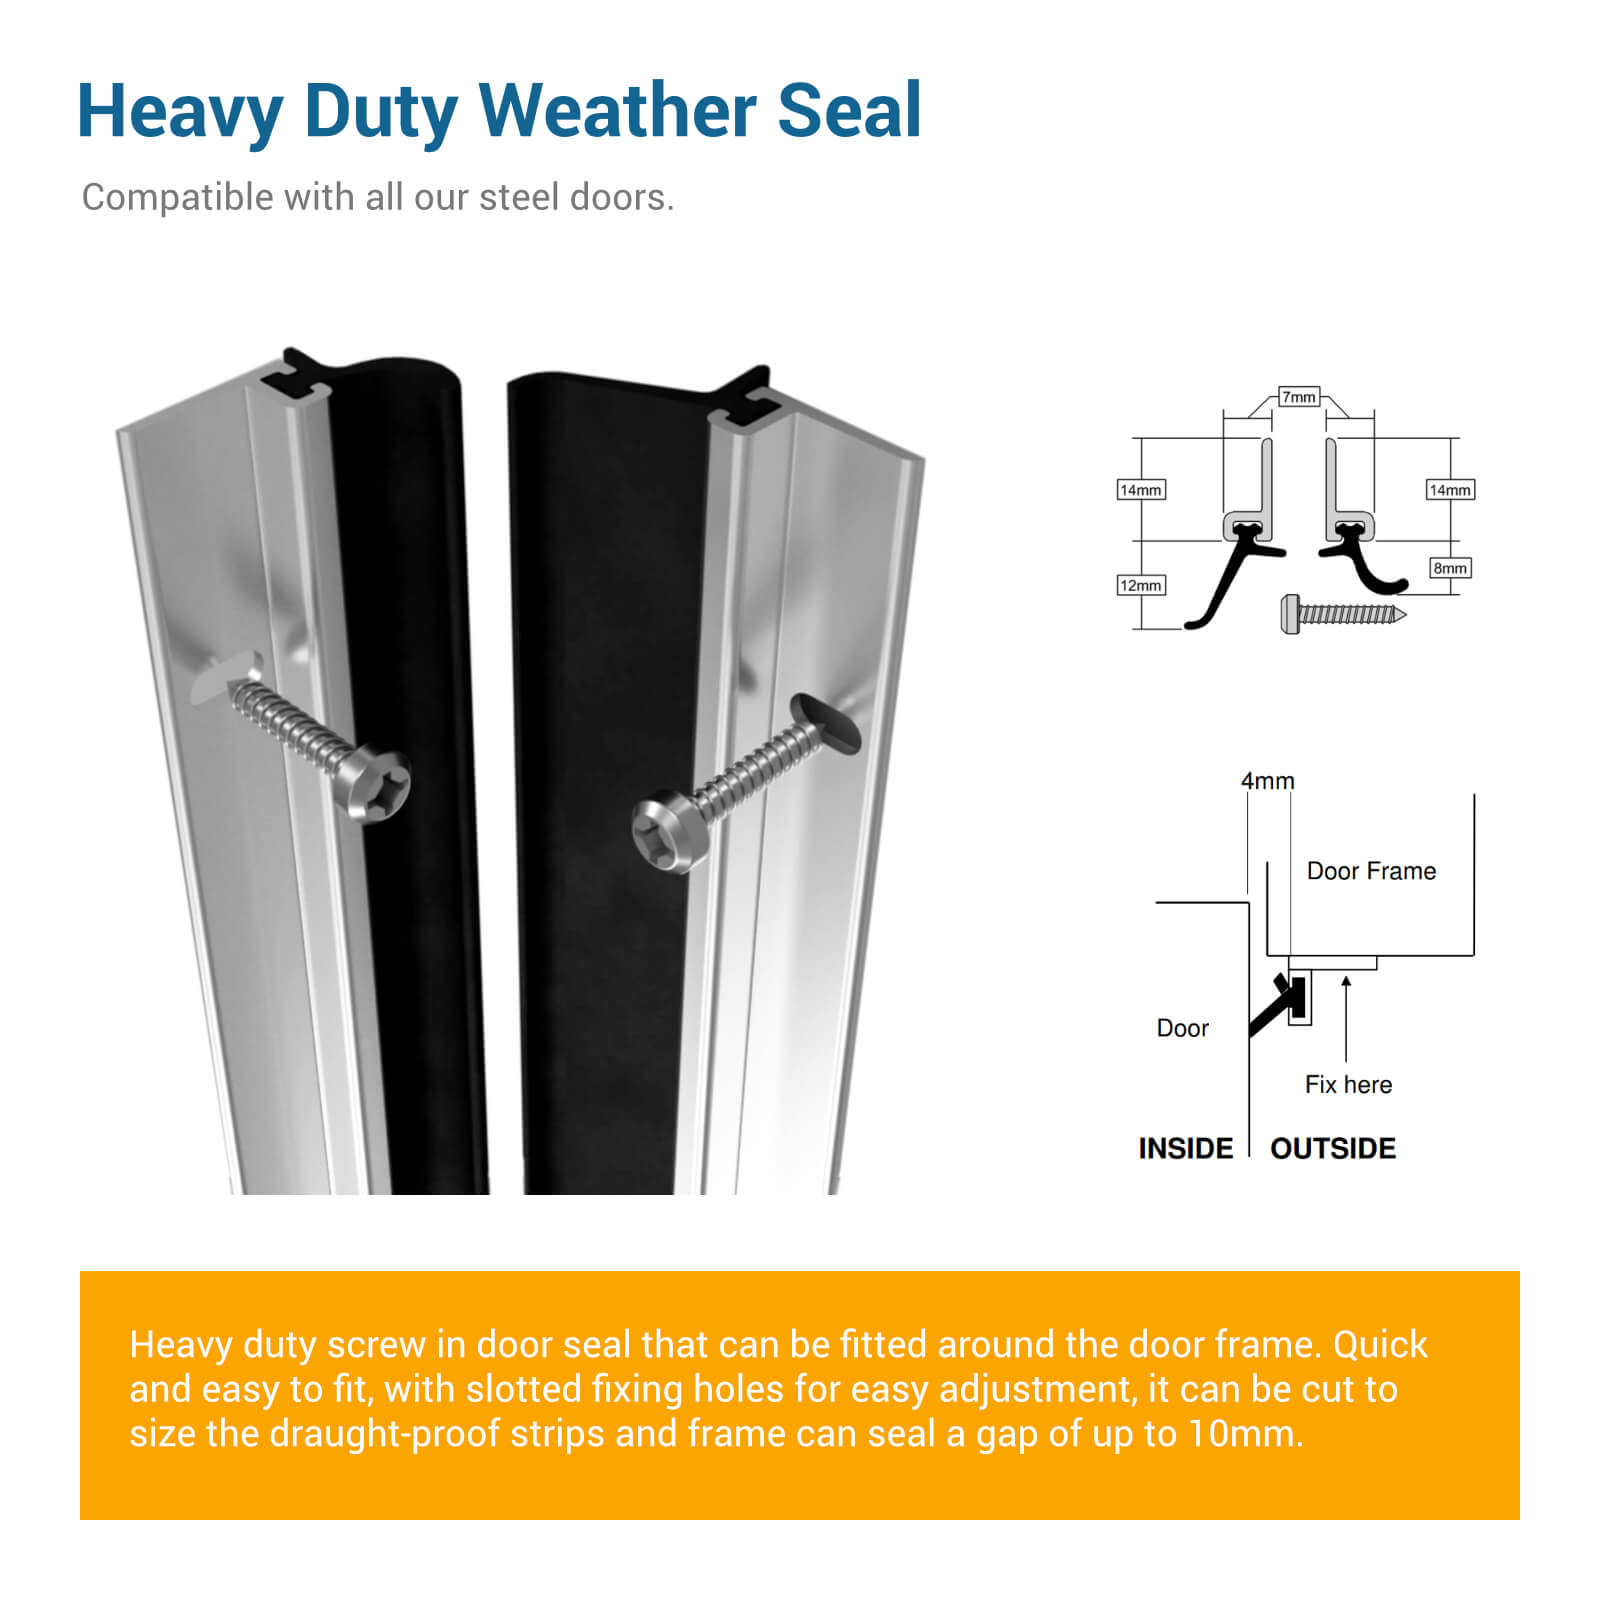 heavy duty weather seal